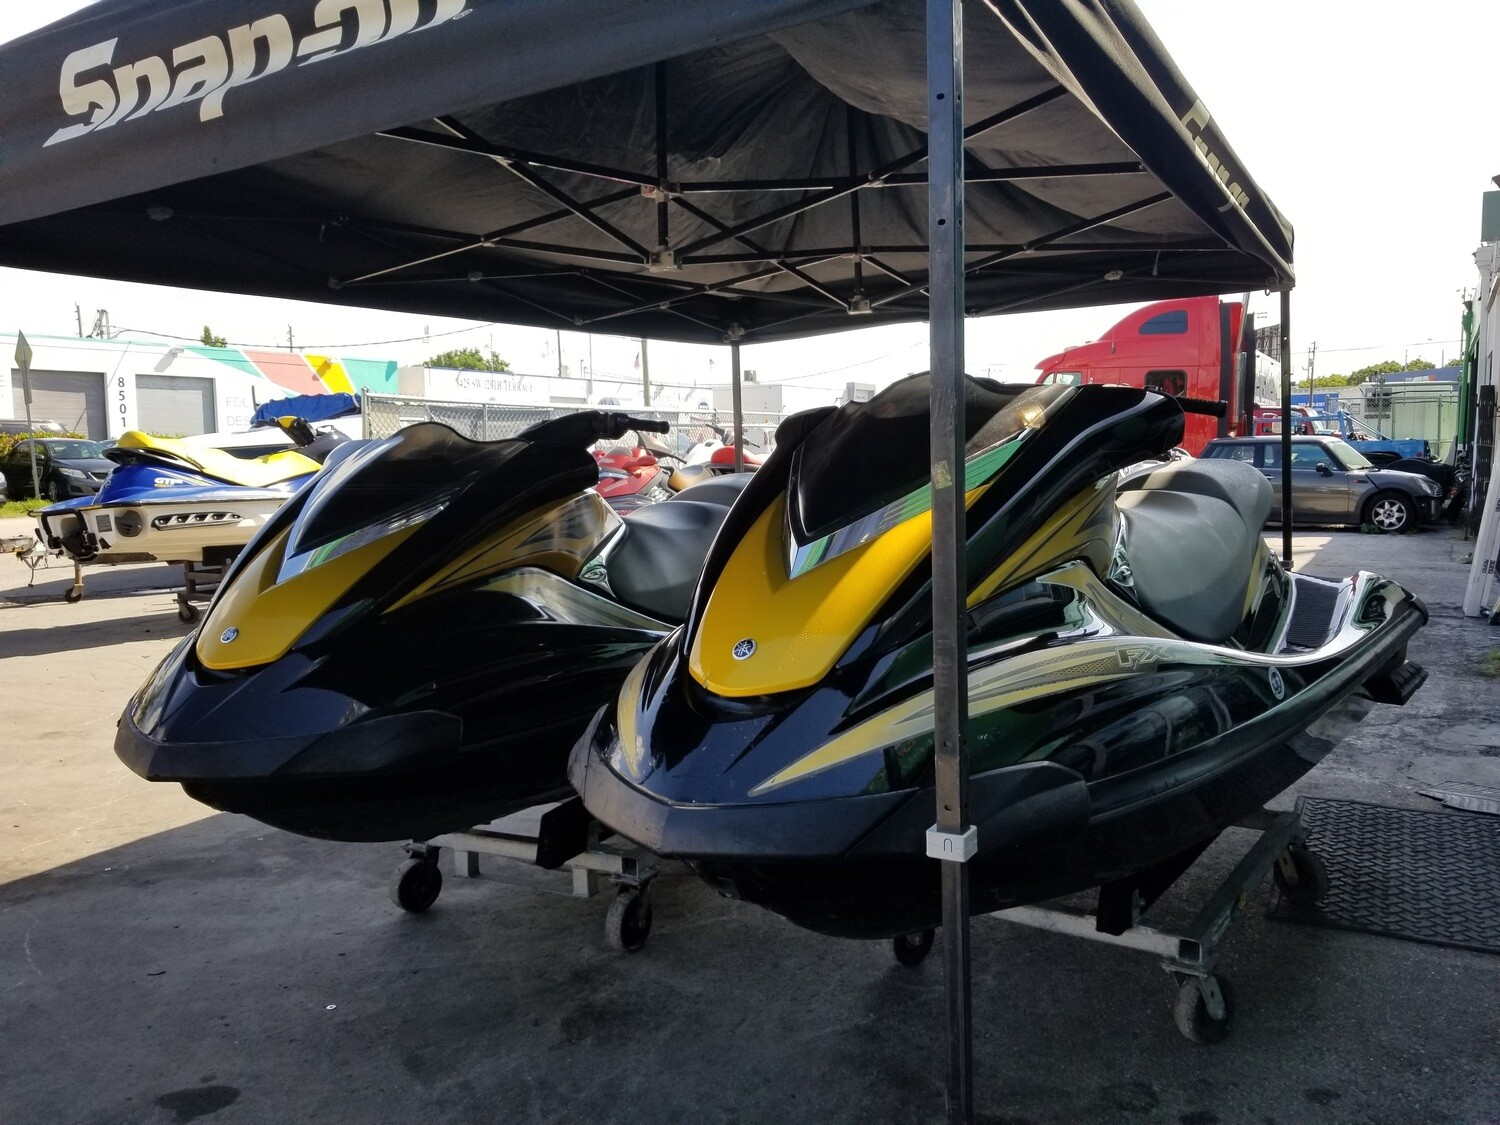 SPECIAL PRICE FOR SET !! Set of Jetskis 2006 Yamaha FX 160 hp Waverunners , Reverse , 3 passengers  ( two unit in Stock ) Unit Price $ 4200